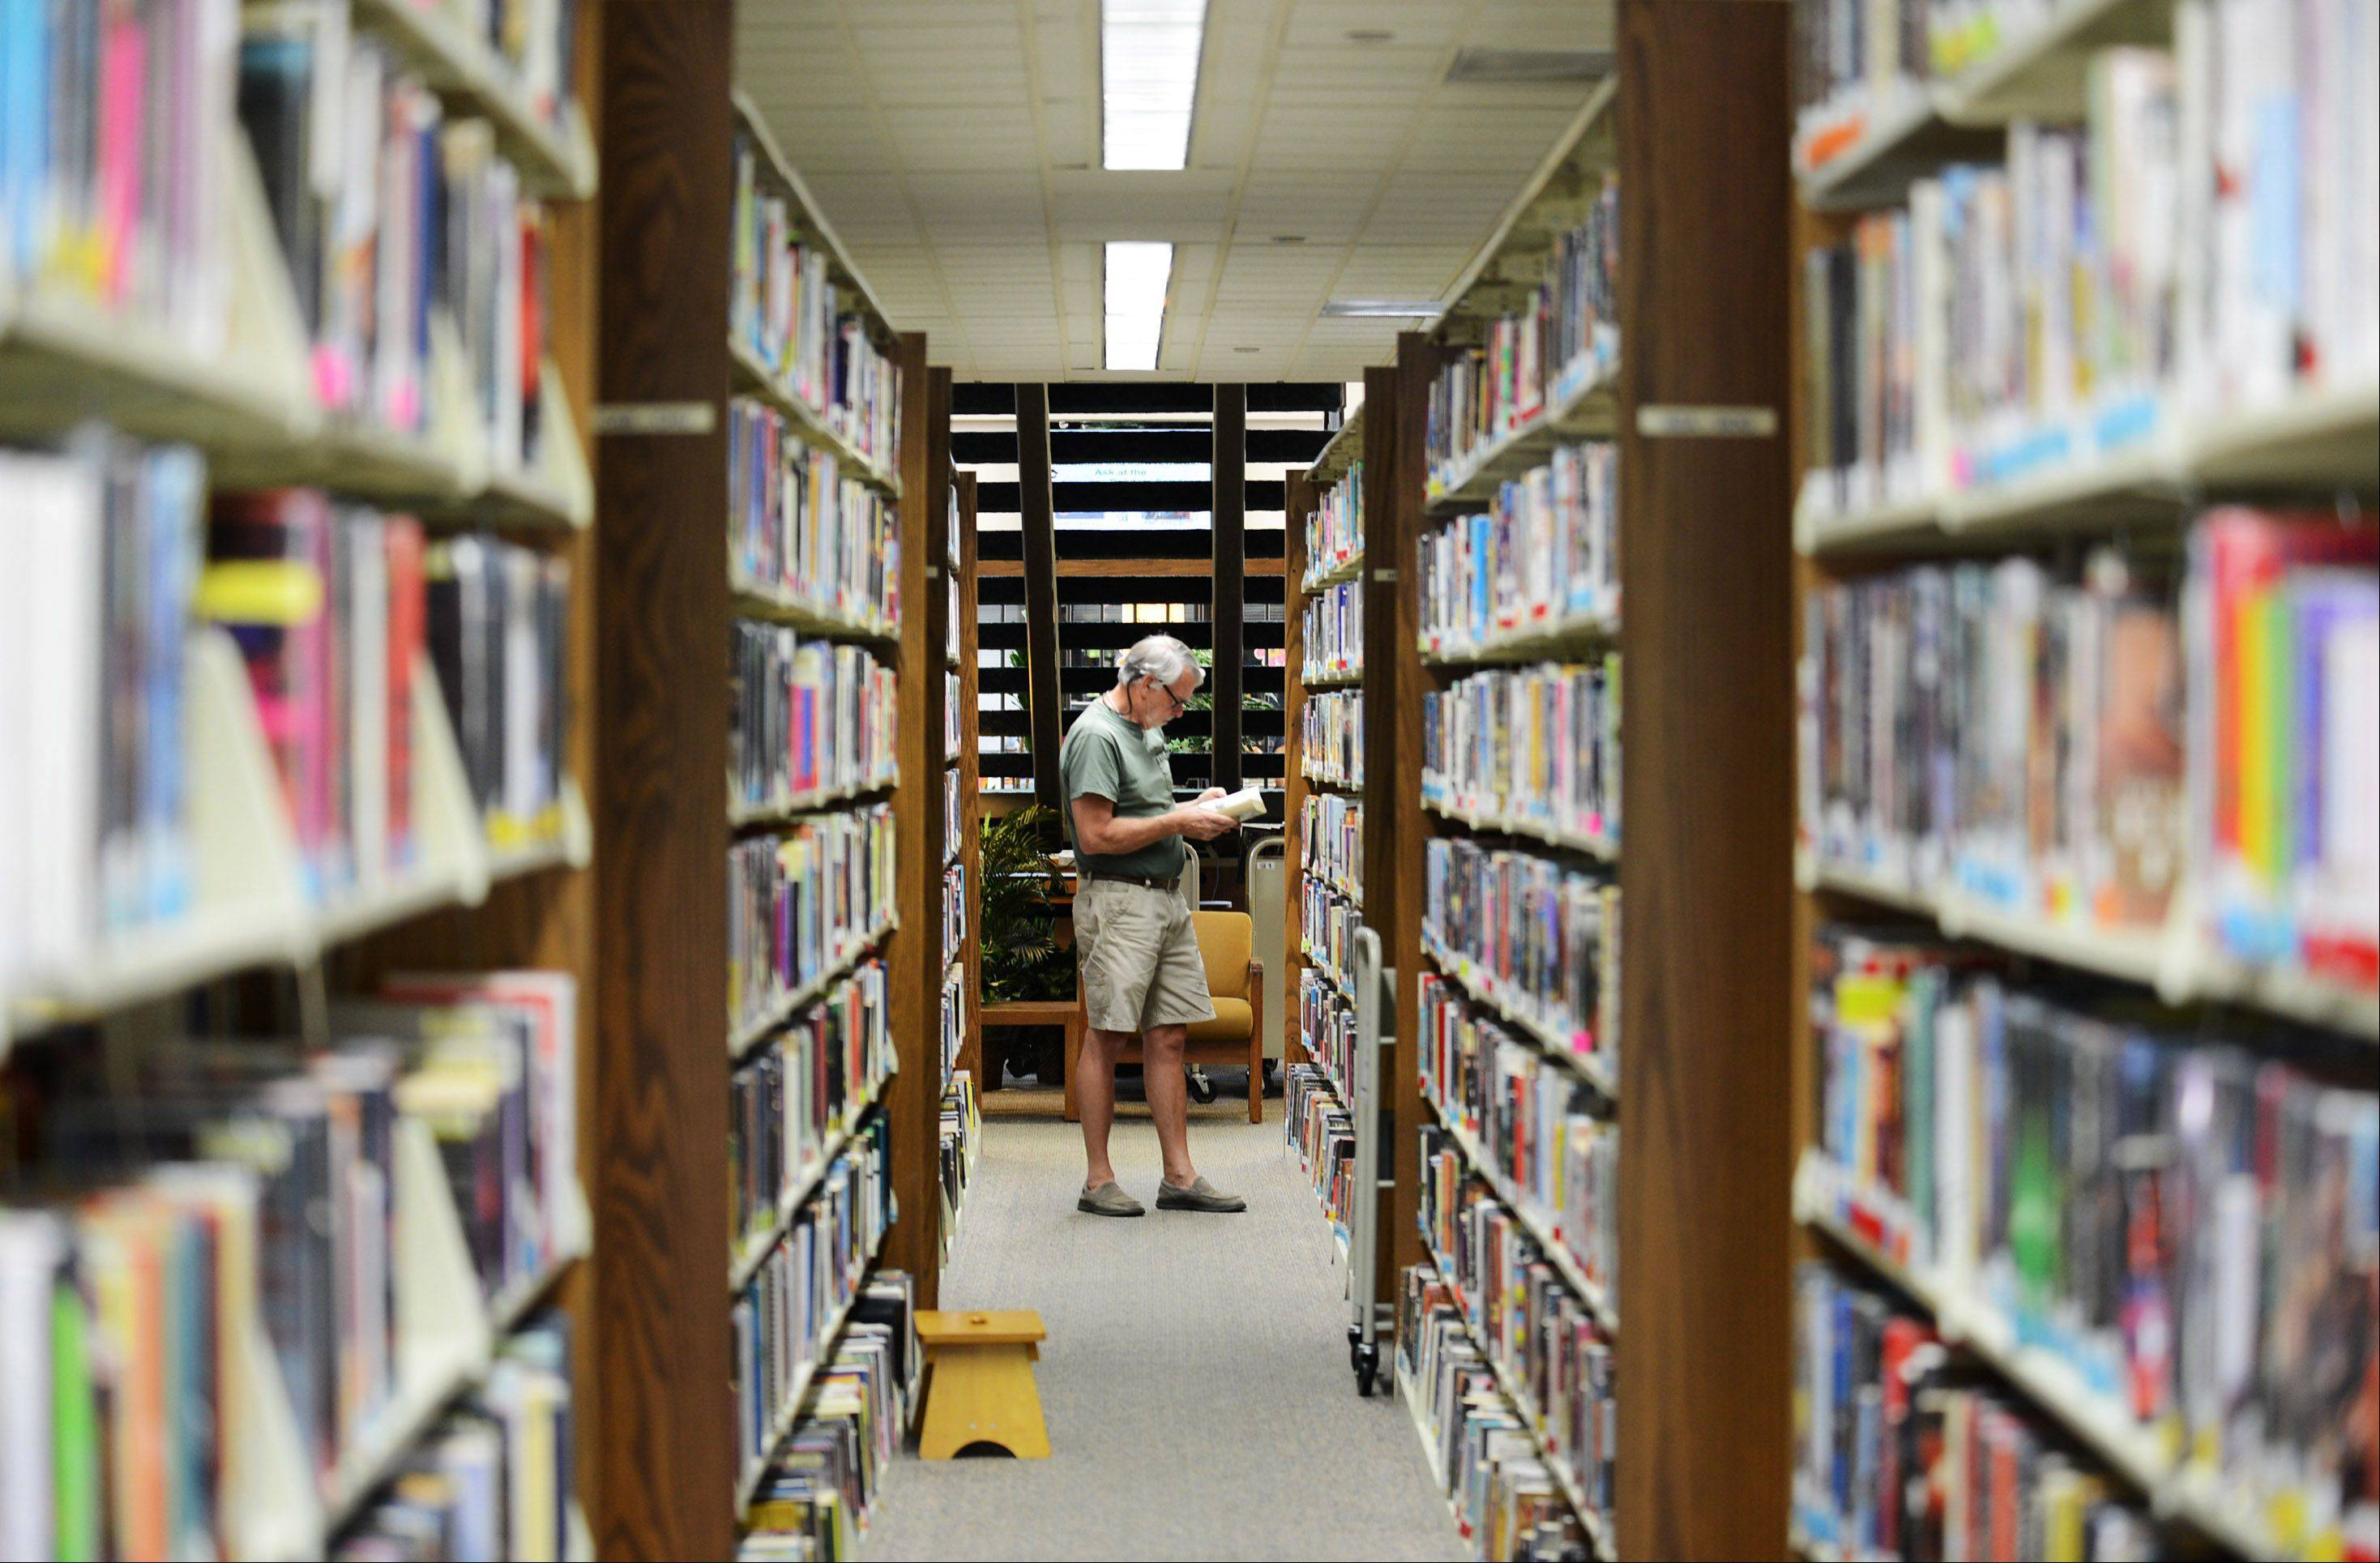 Mike Philiben, of St. Charles, looks through the selection at the St. Charles Public Library Monday. As a retiree, Mike gets to visit the library often, at least twice a week.